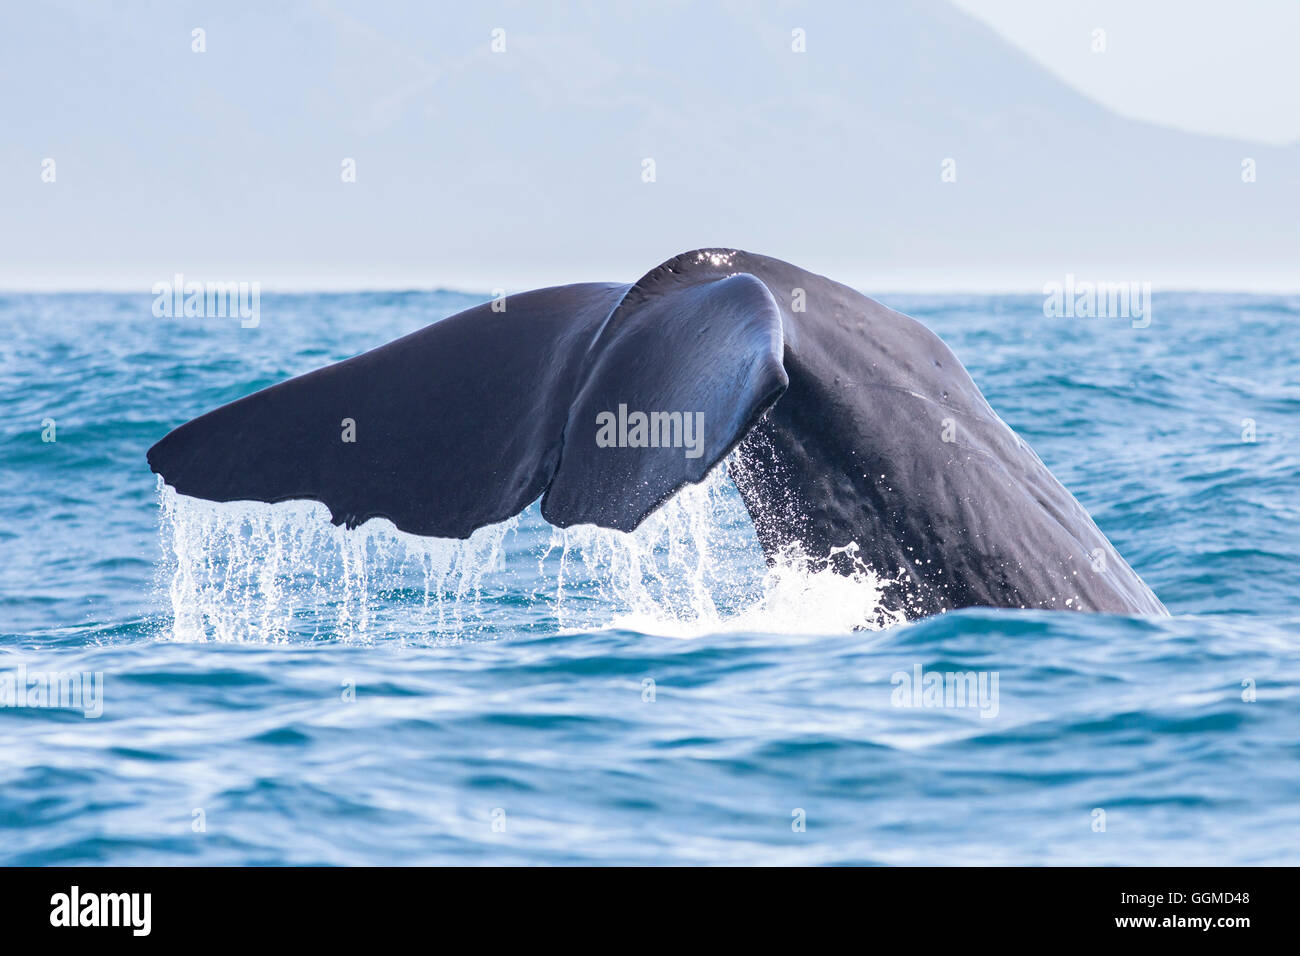 Fluke of a spermwhale at Kaikoura, South Island, New Zealand - Stock Image